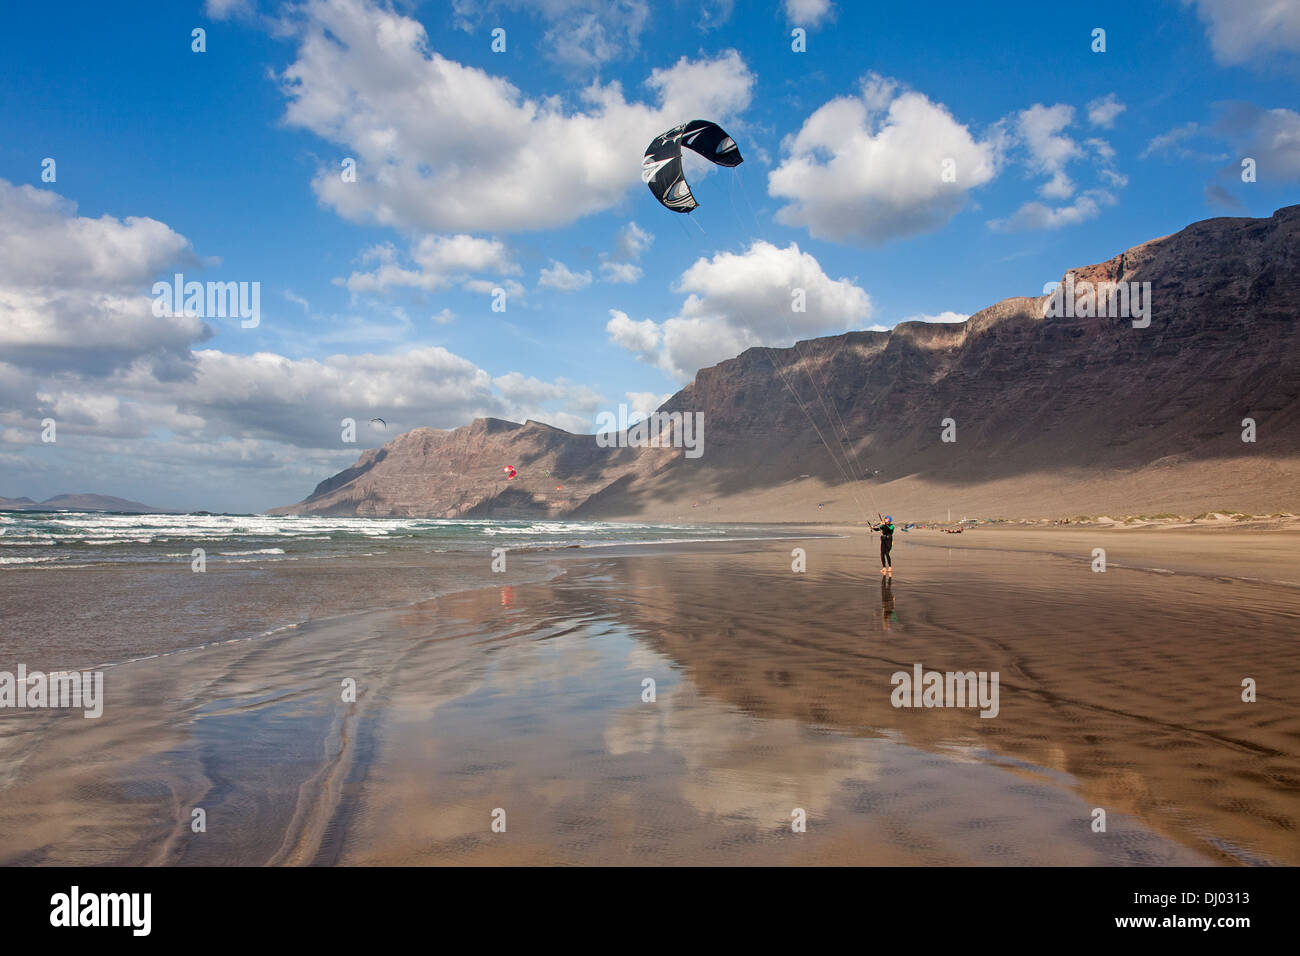 man kite surfing on windy famara beach with risco de famara in the background - Stock Image